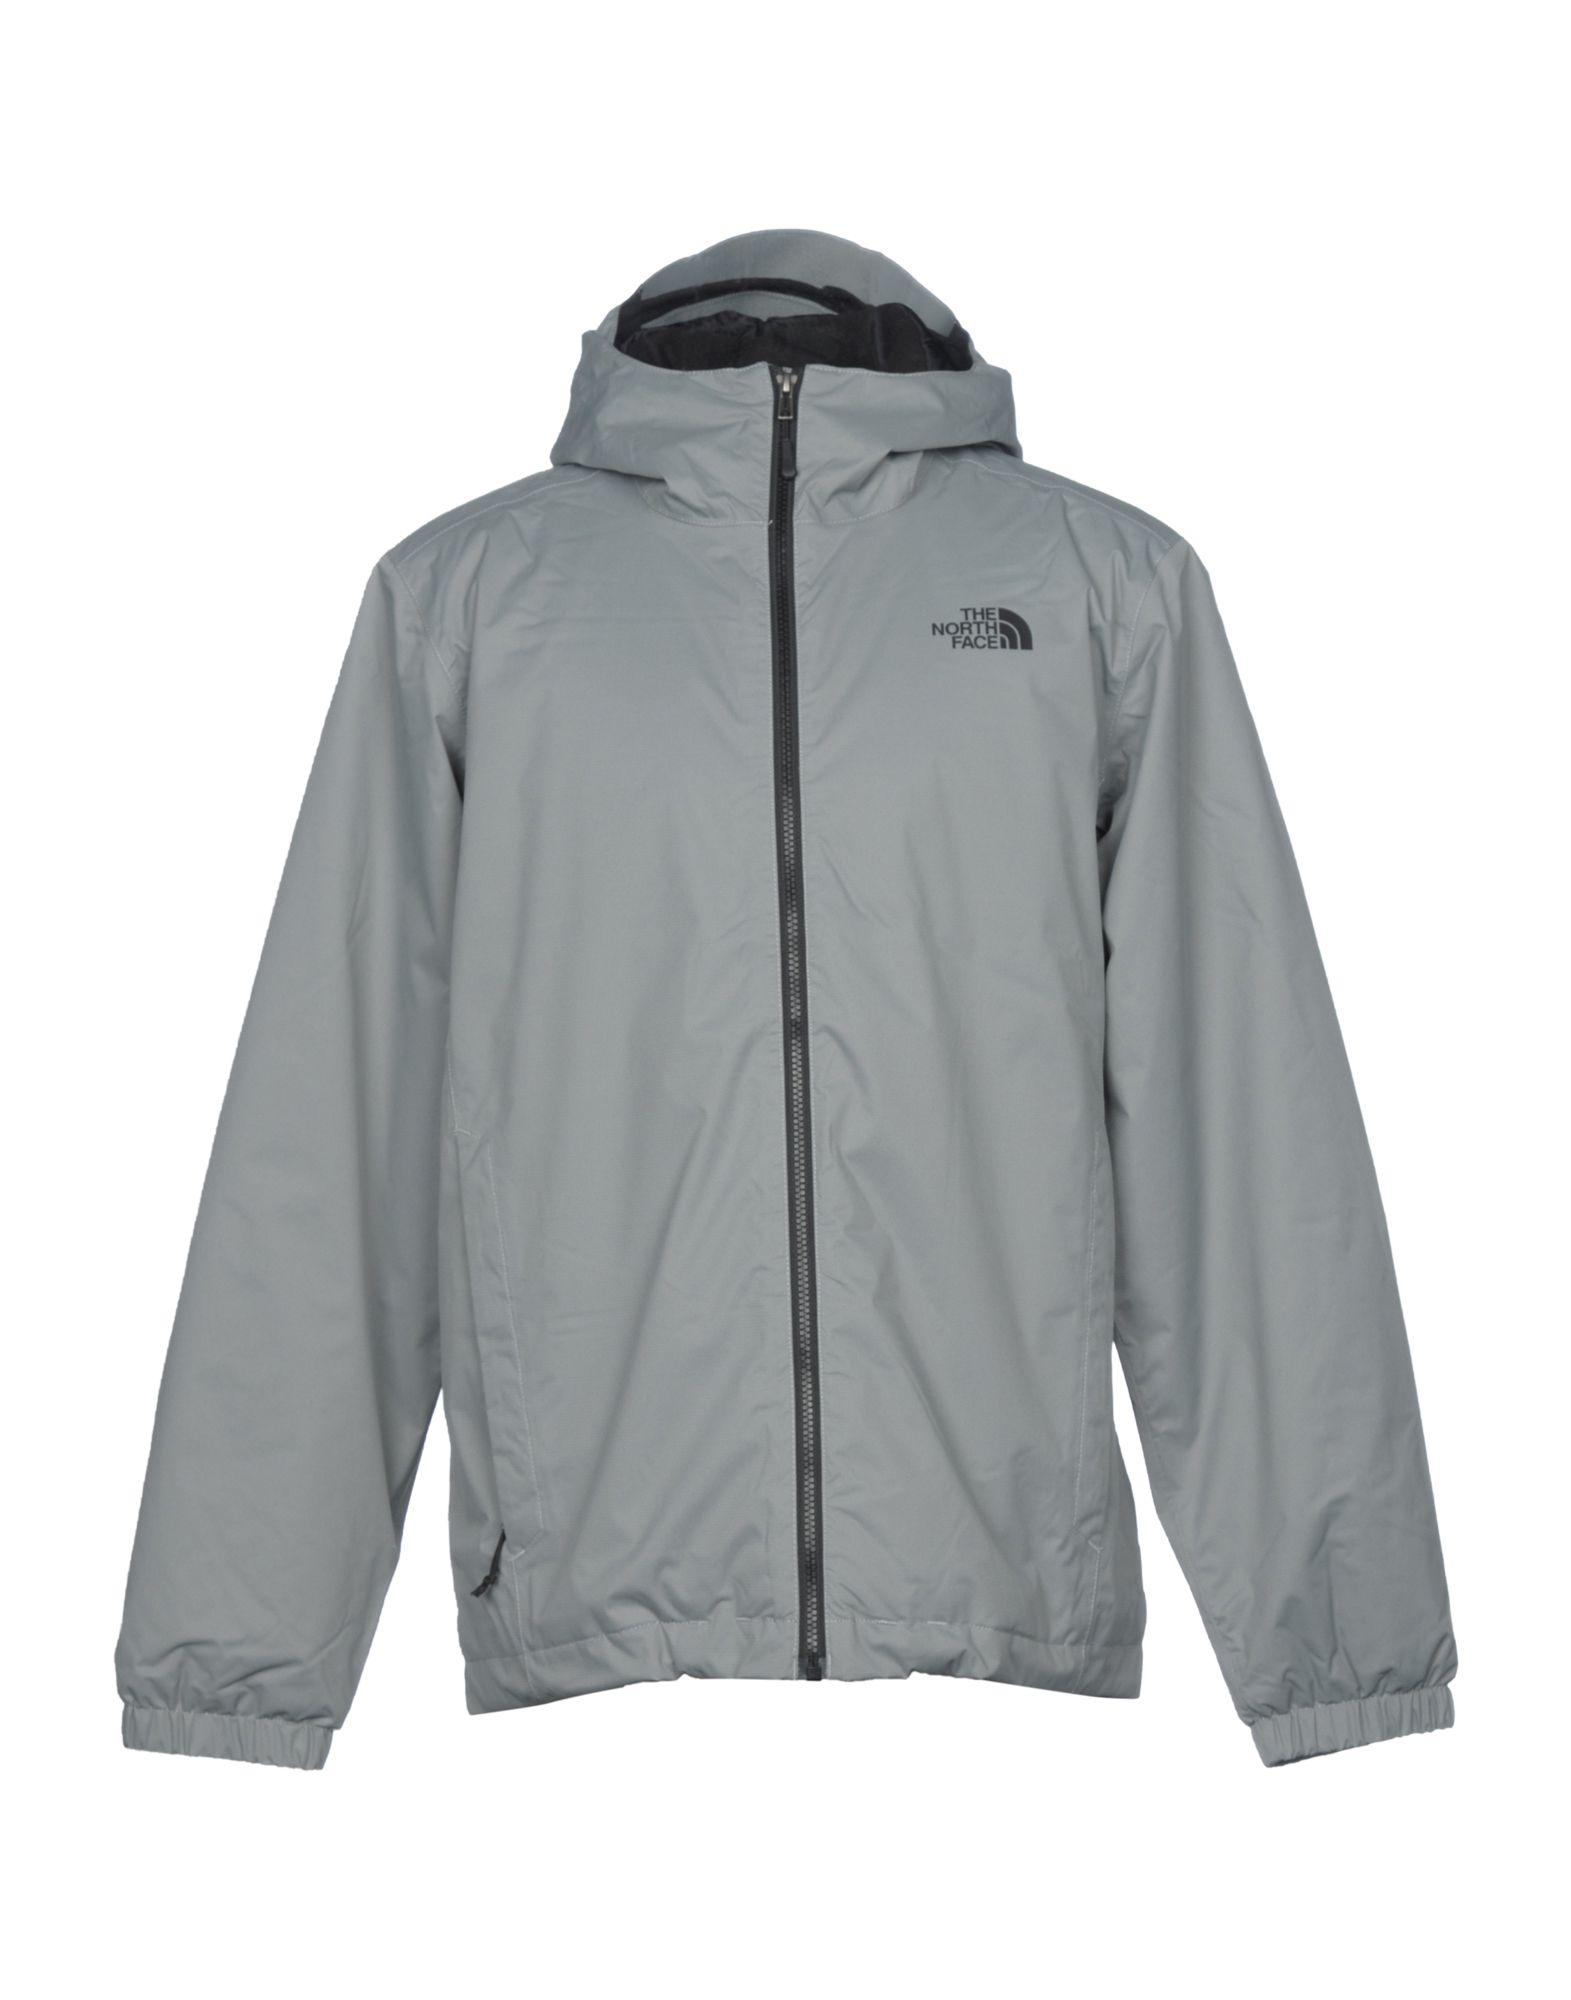 The North Face In Grey